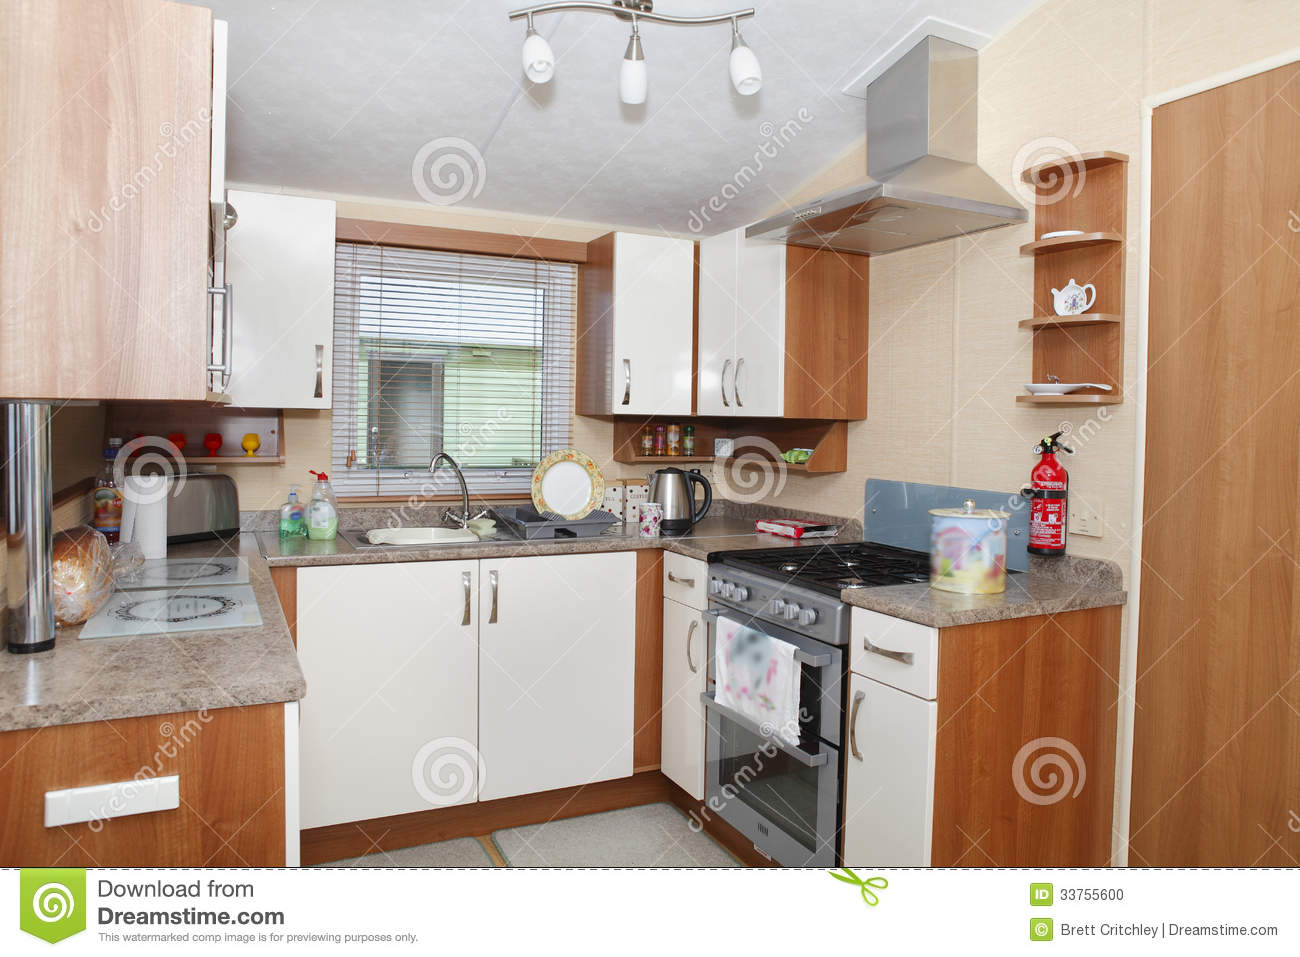 new-static-home-caravan-interior-33755600 Map Fire Extinguisher on fire sprinklers map, fire engine map, helmet map, fire drill map, fire emergency map, fire exit map, fire suppression system design, fire belt map, tv map,